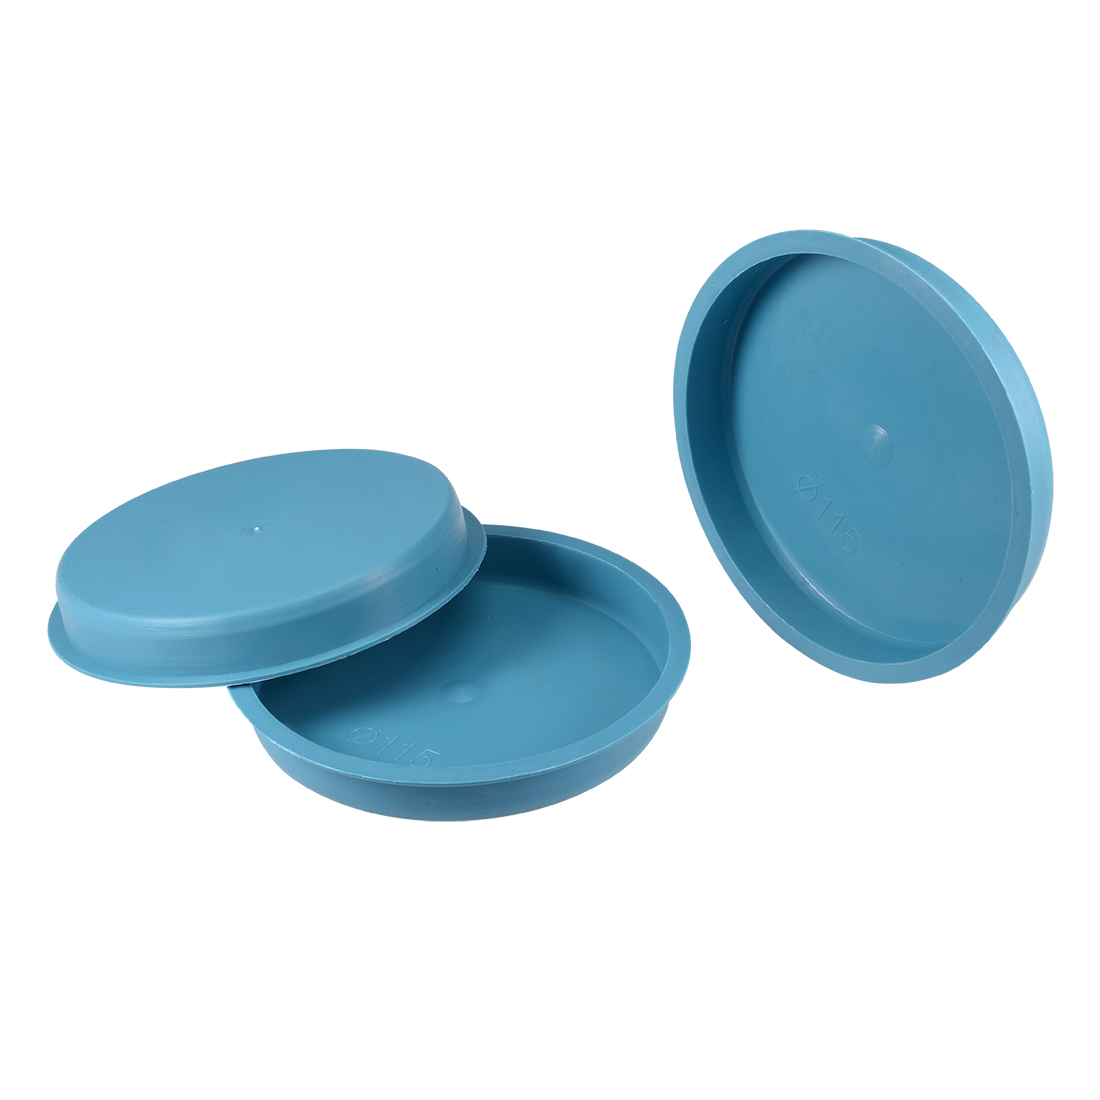 10pcs PE 115mm x 18mm Round Head Hole Stoppers Waterproof Tapered Caps Blue